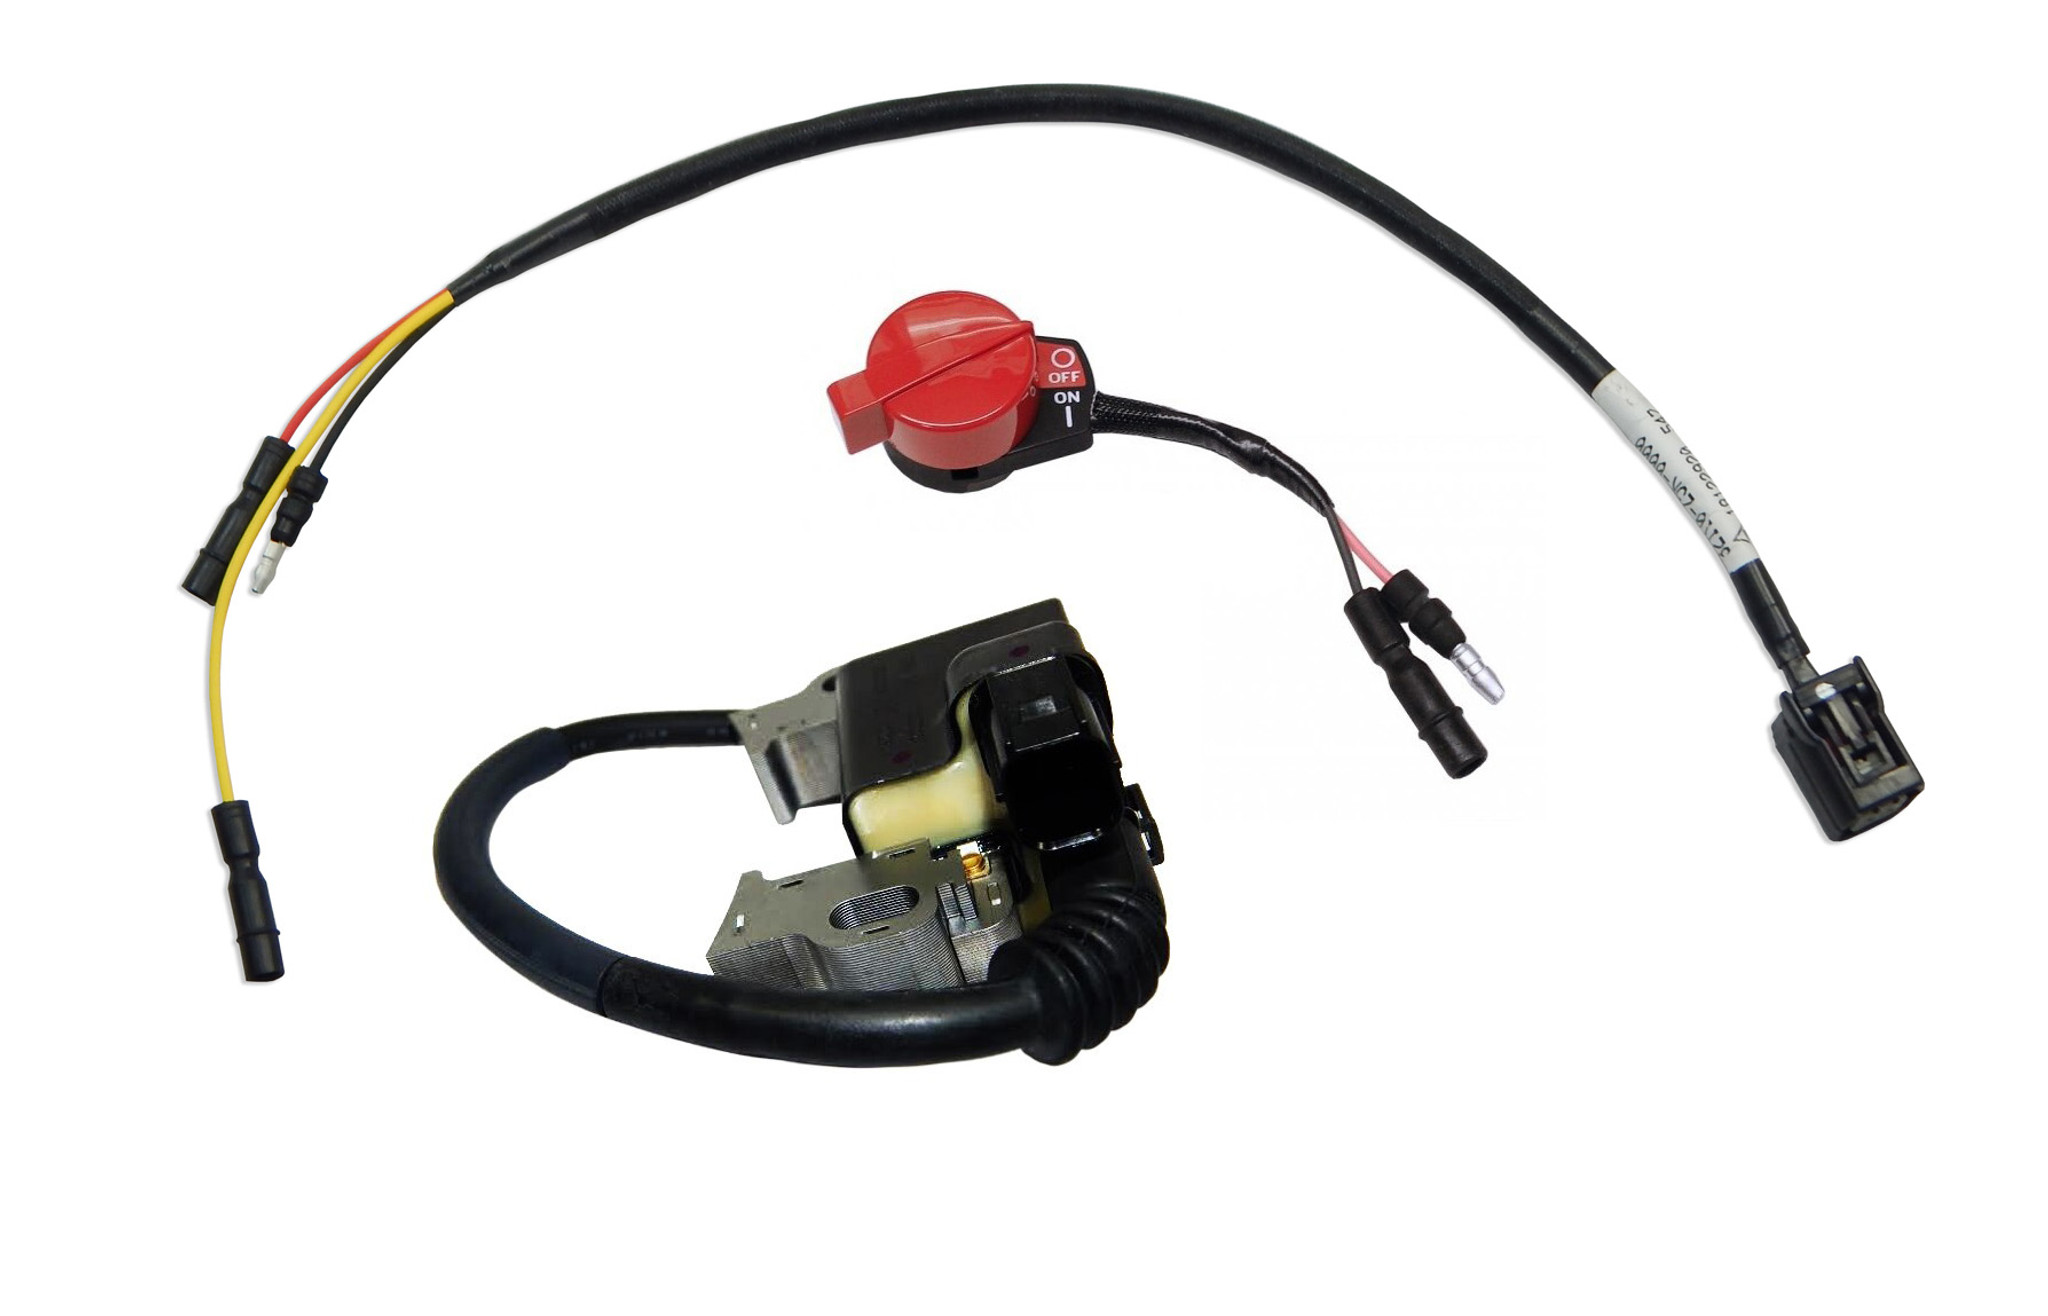 Ignition Coil, Stop Switch, Wiring Harness Kit   GX340, GX390    30500-Z5T-003 - DHS Equipment   Gx390 Wire Harness      DHS Equipment